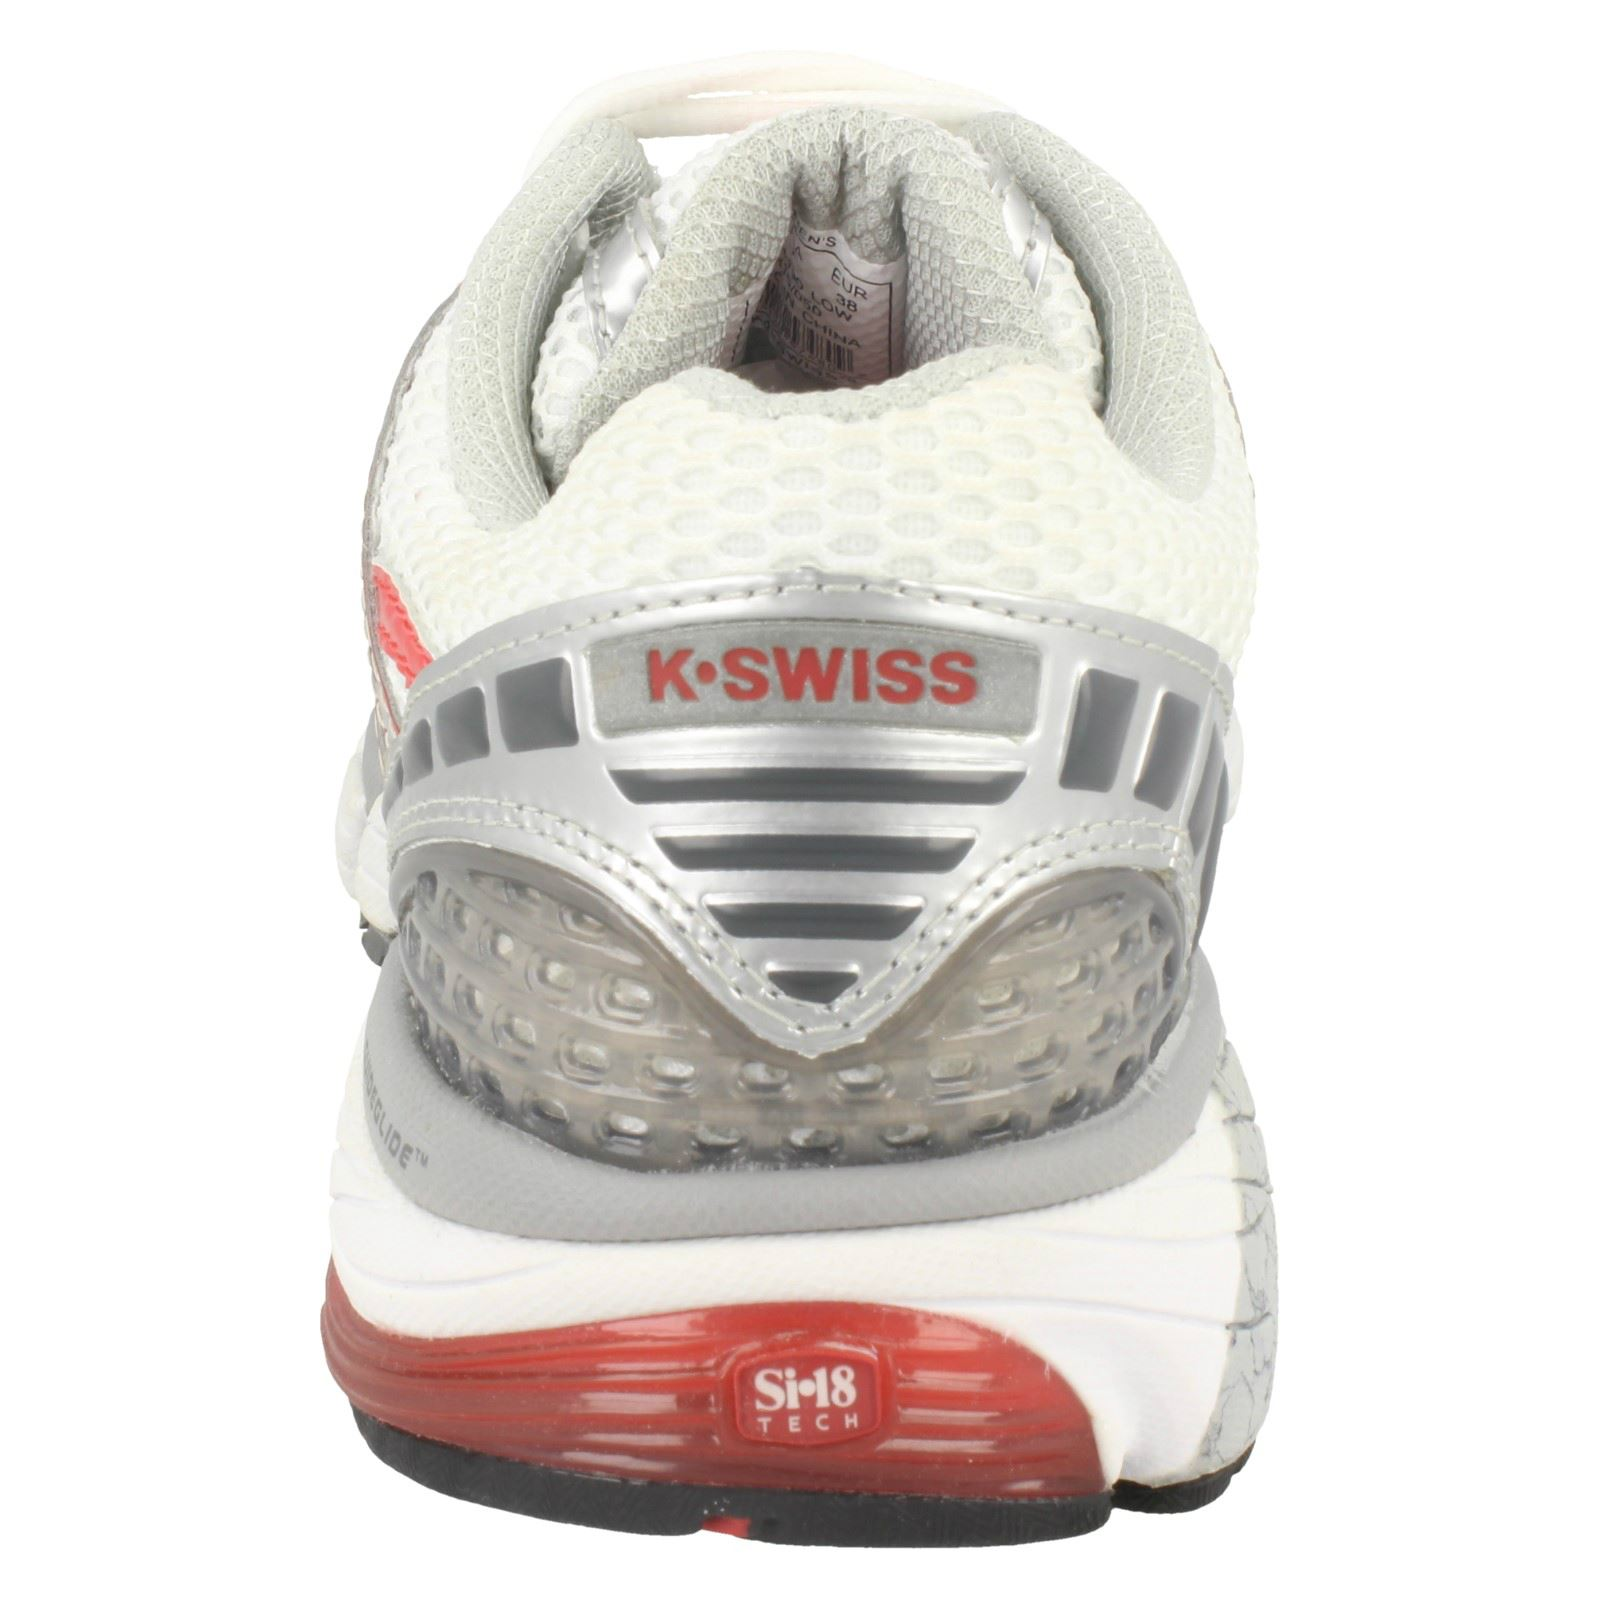 Up Casual K Sporty Konejo Trainers Rounded red Textile Swiss Ladies White Lace charcoal Toe Ii silver whi Y1XSRg